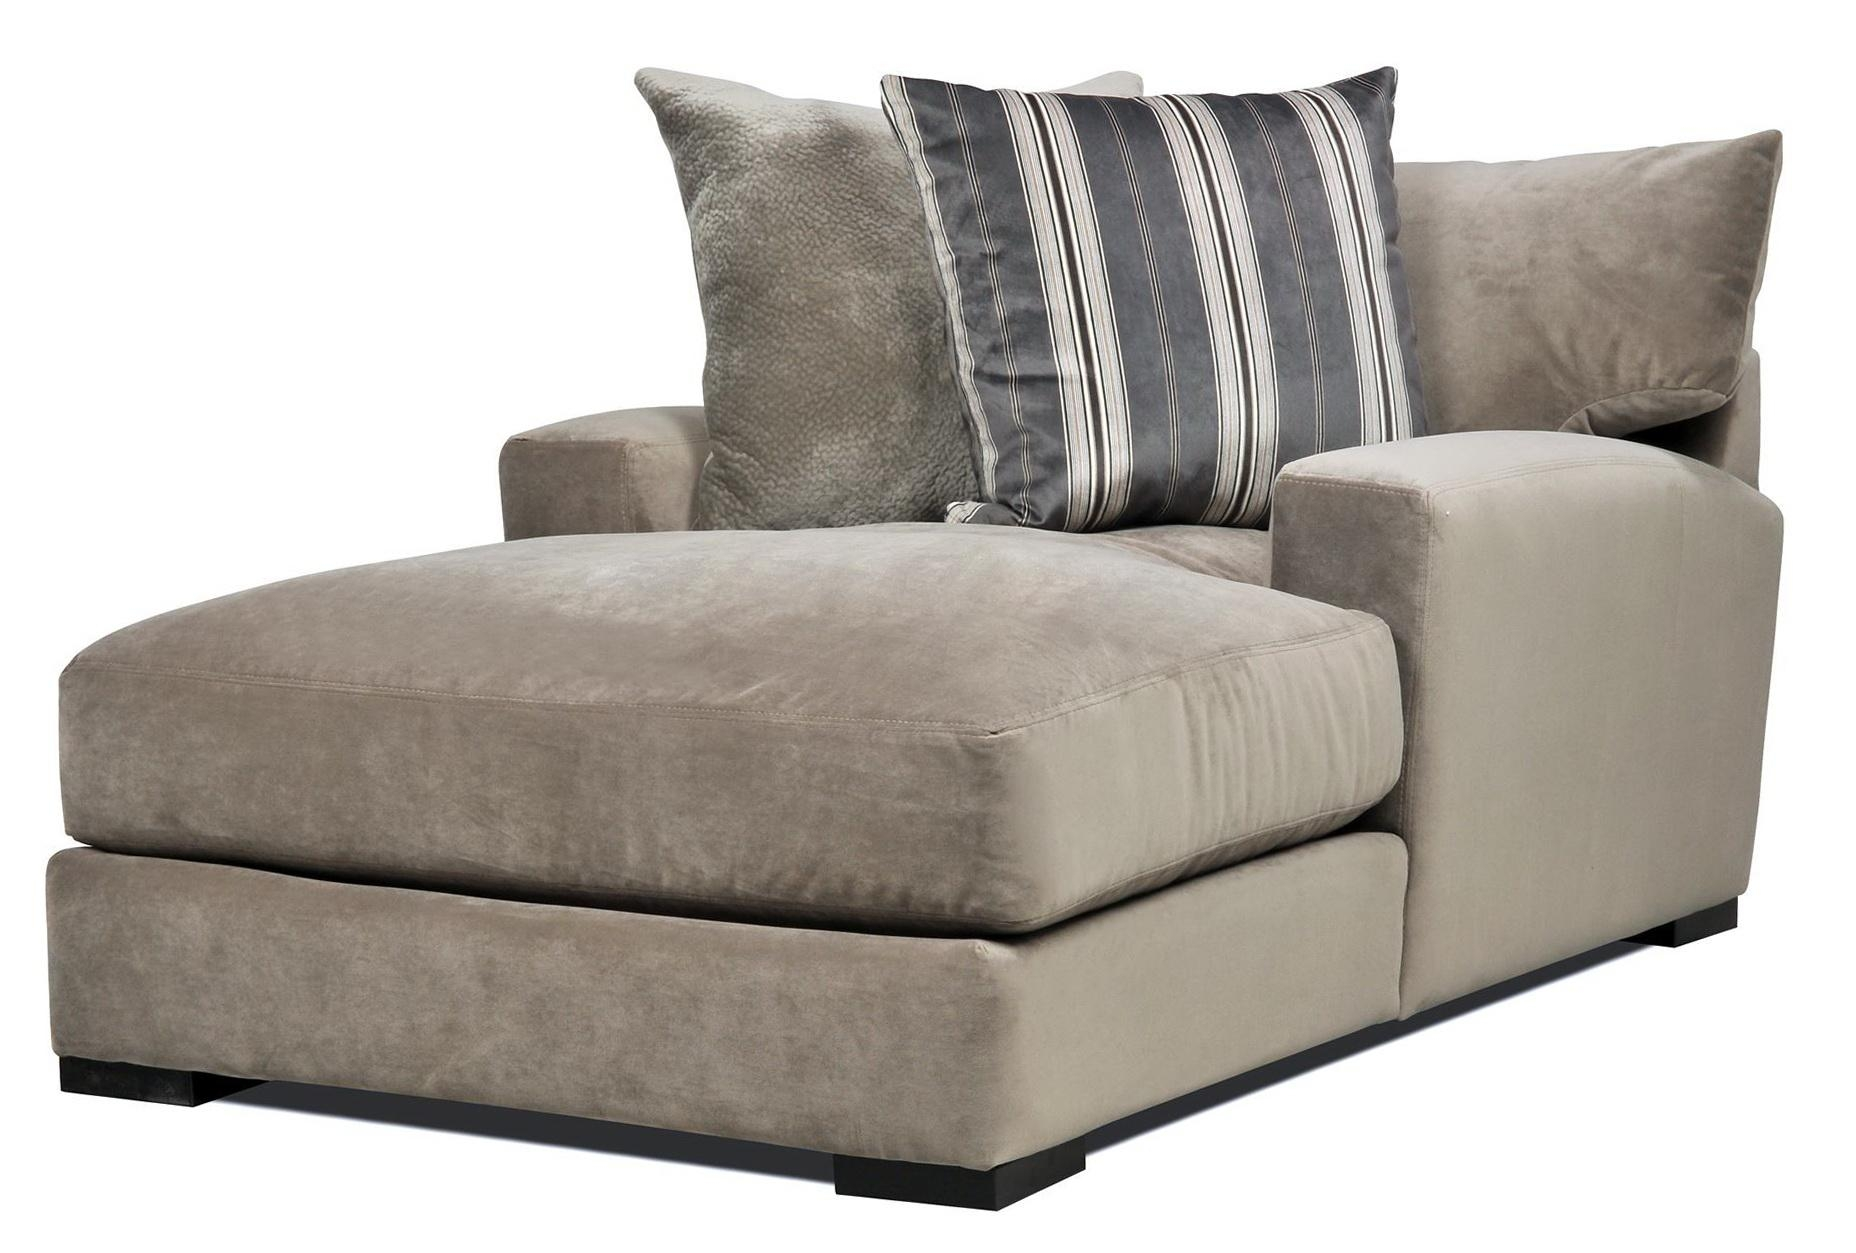 Indoor Reclining Chaise Lounge Chairs Memes With Decor Chair In Wide Sofa Chairs (Image 7 of 20)